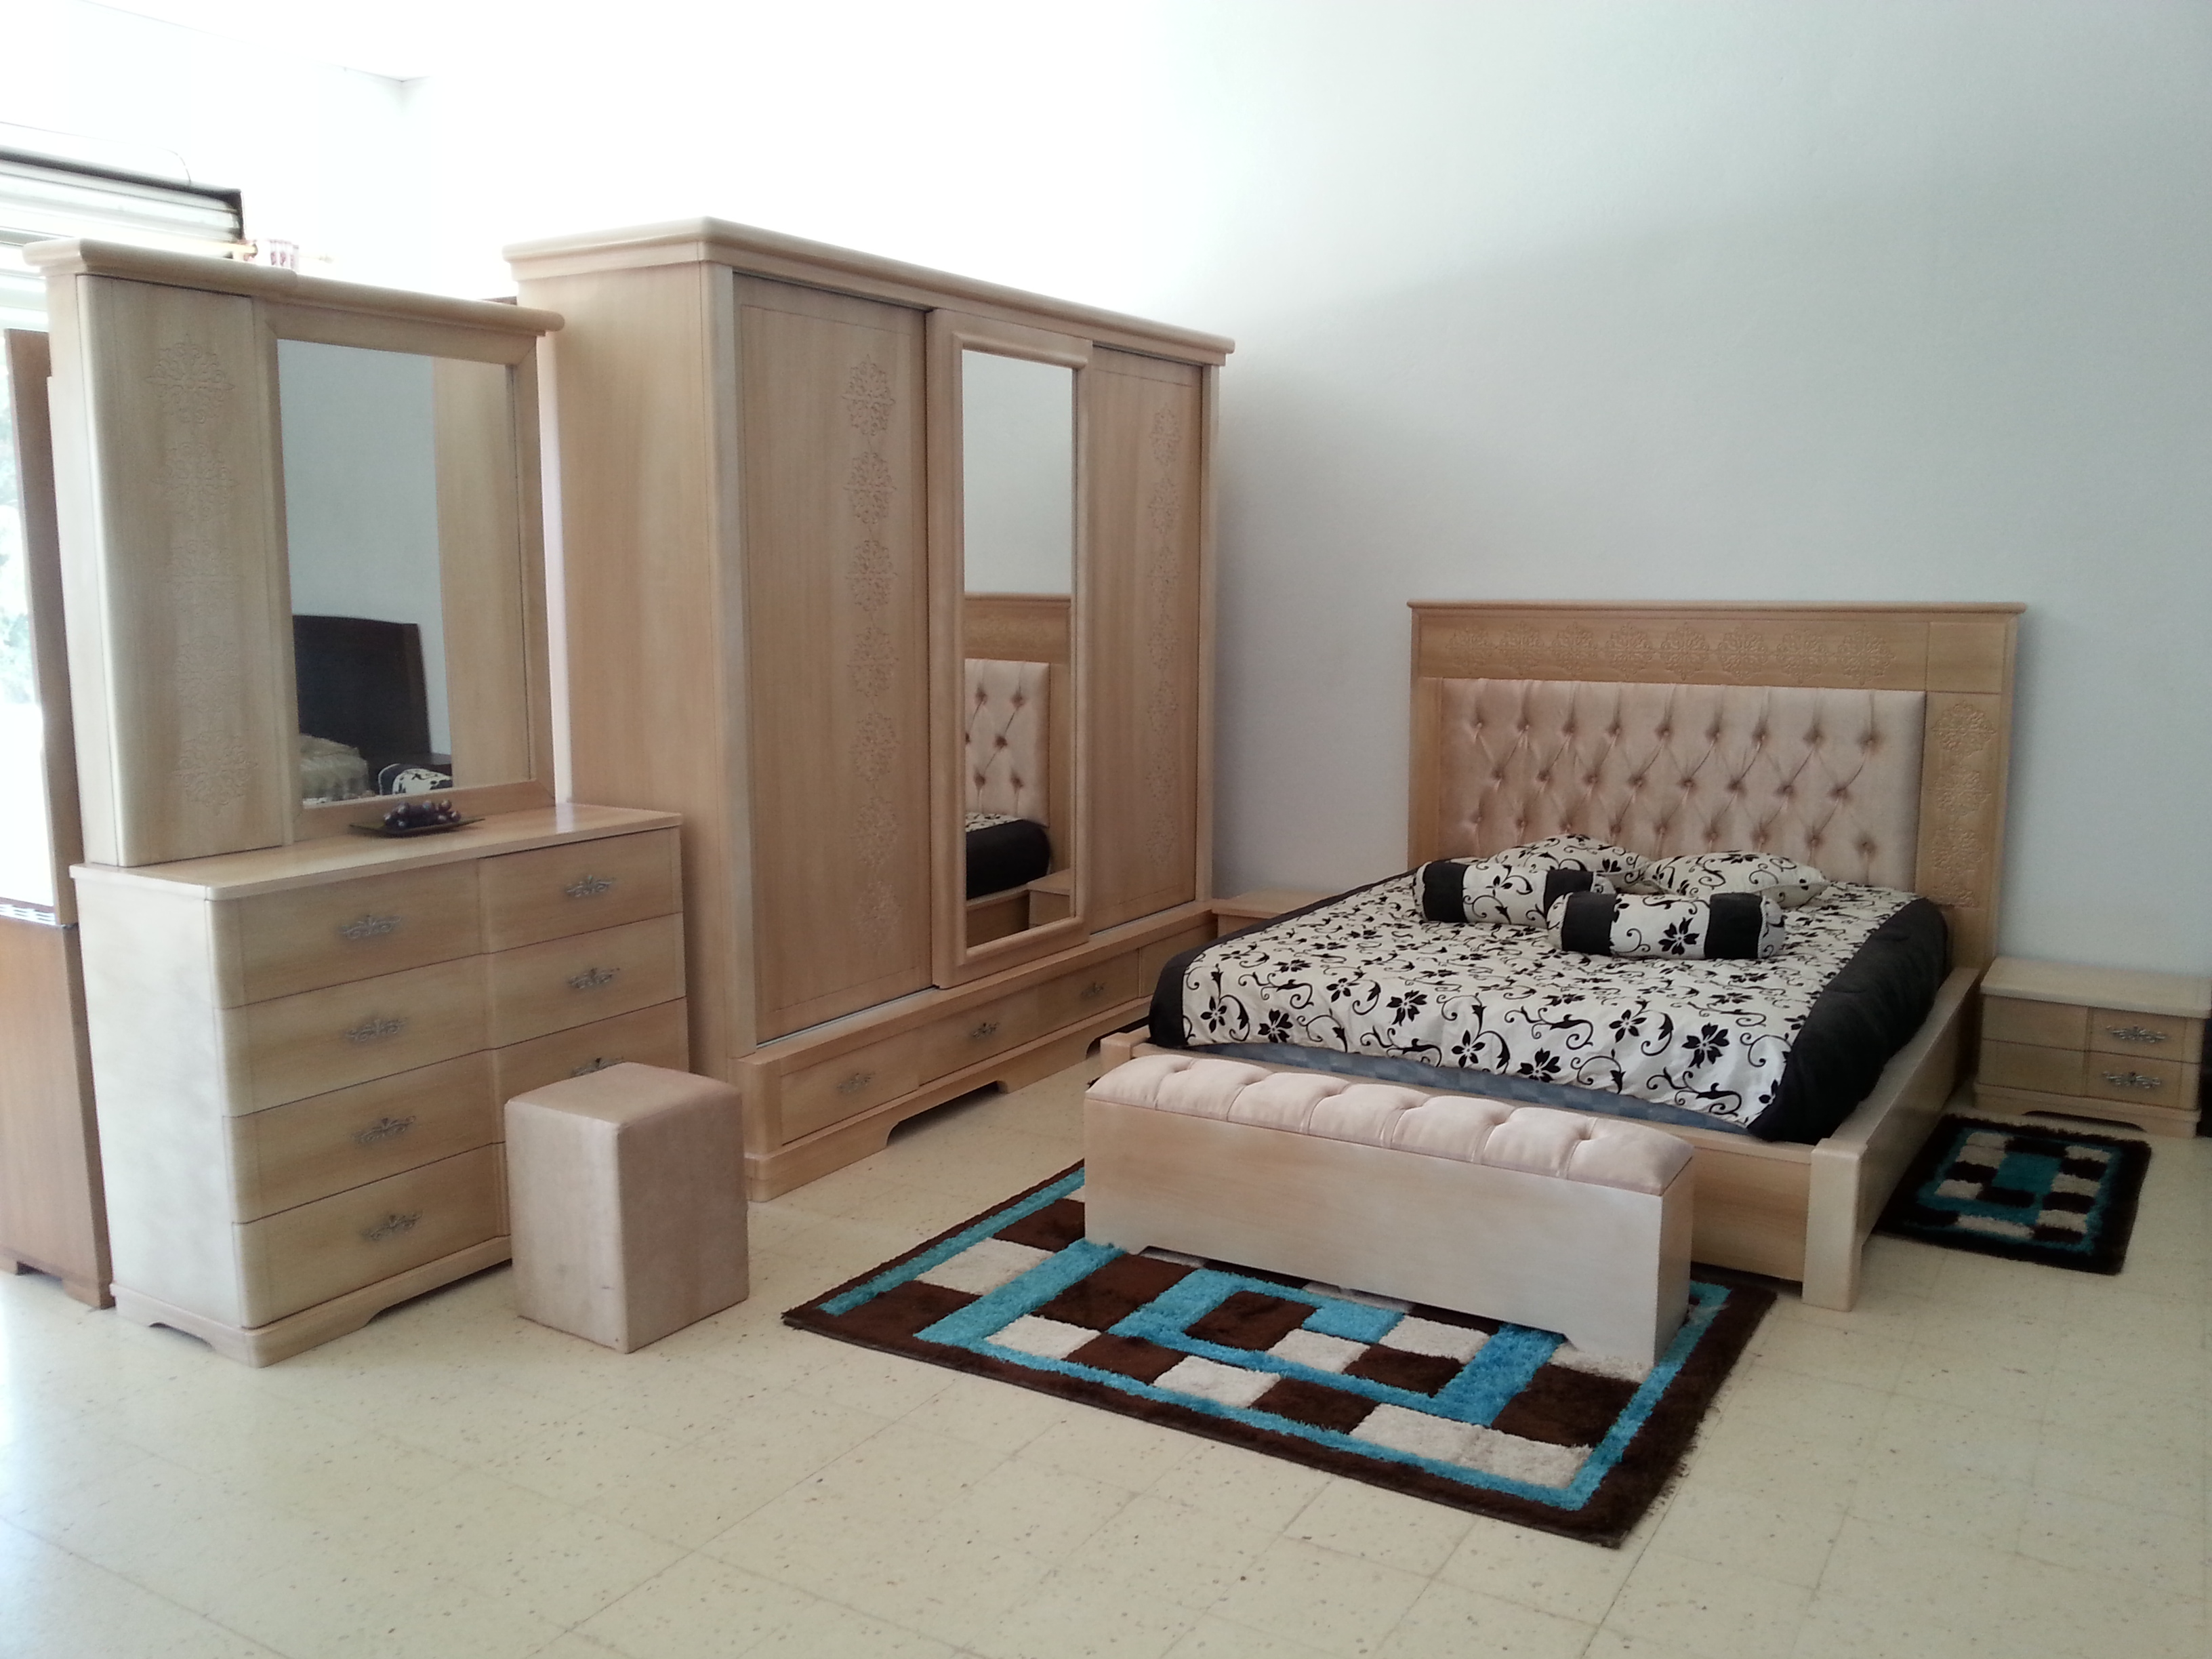 Meuble Kelibia Chambre A Coucher 2016 | Gallery Of Chambre A Coucher ...